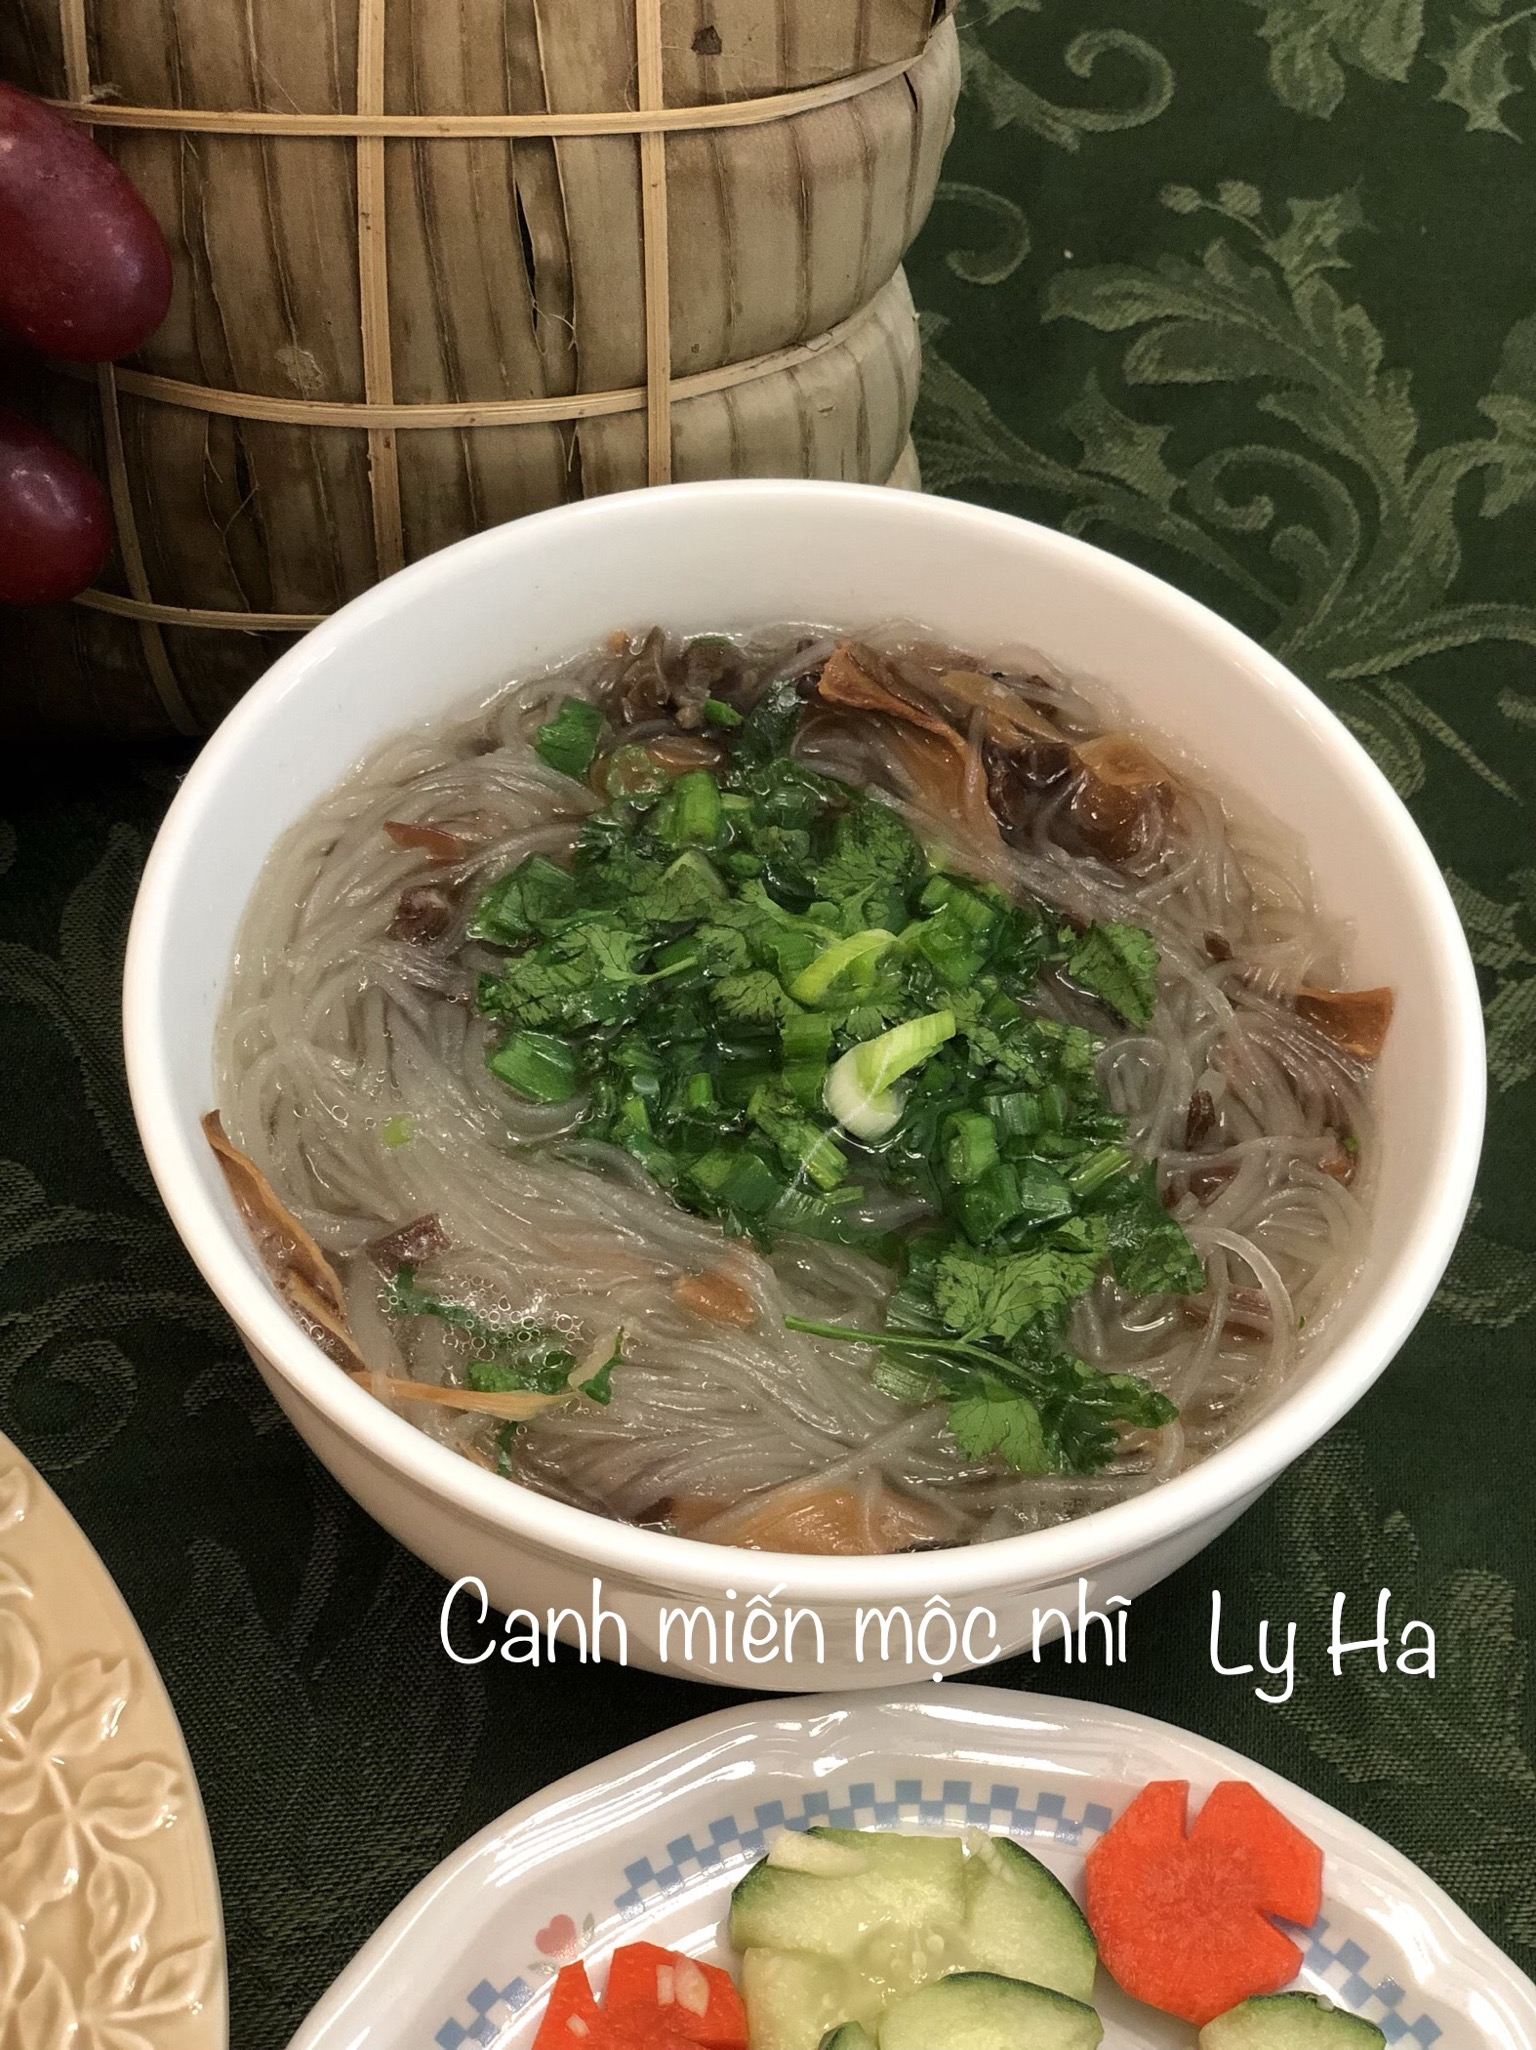 Canh miến